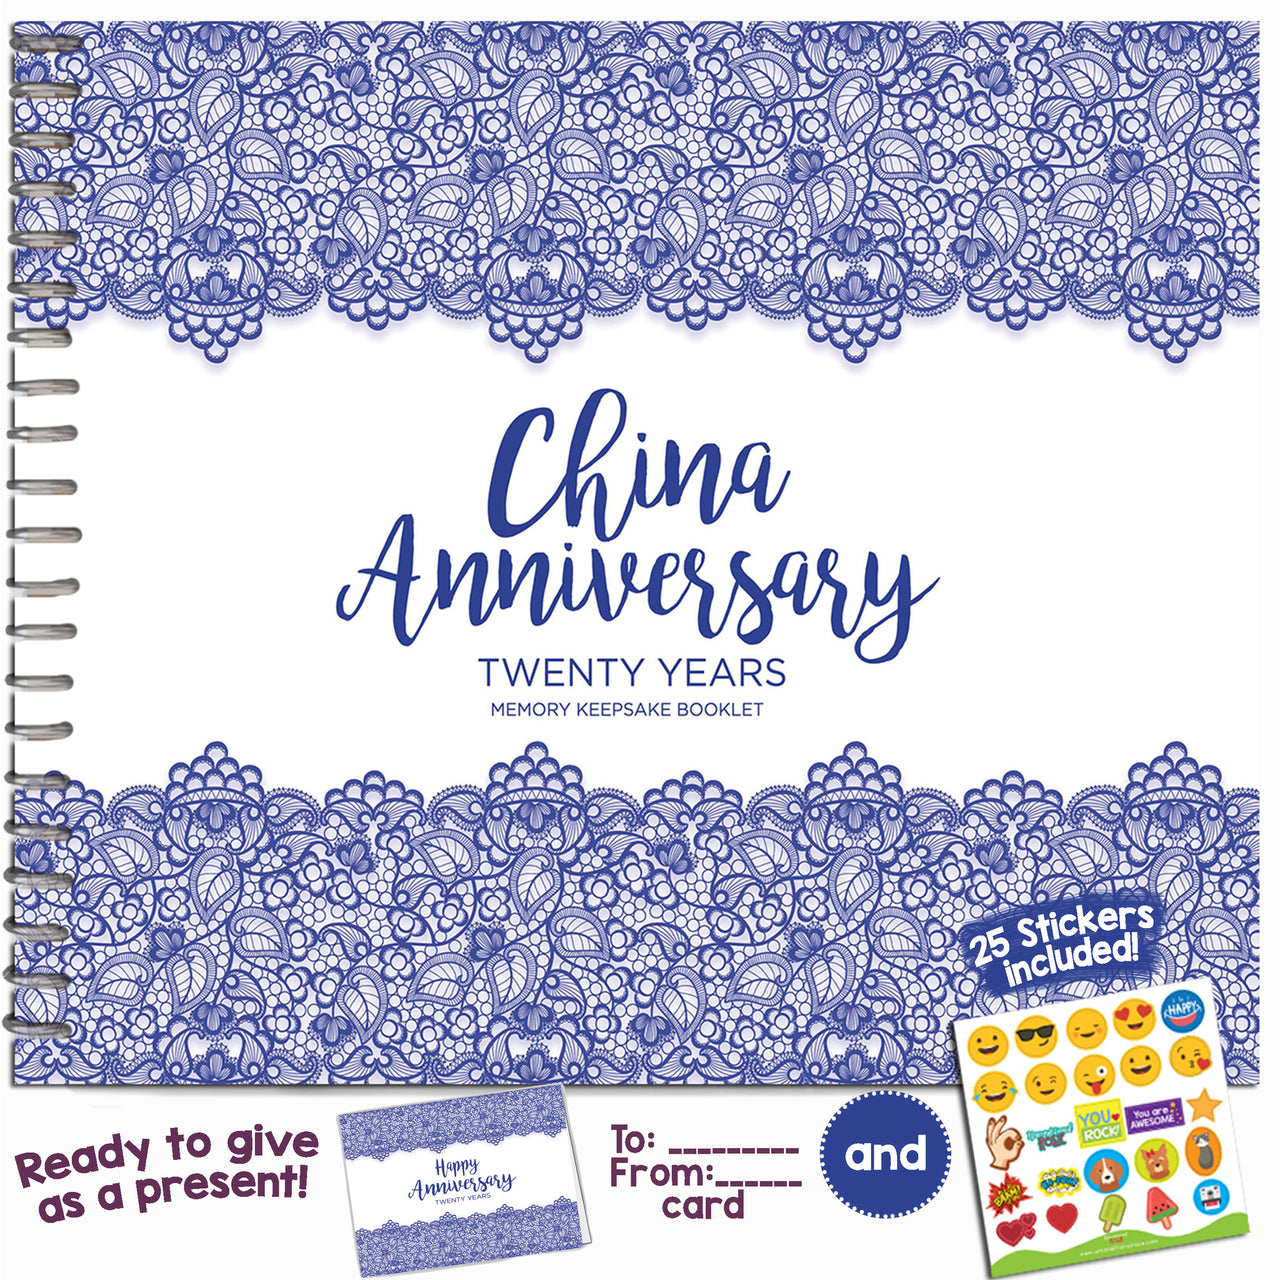 Twenty Year Booklet with Matching Card for China Anniversary